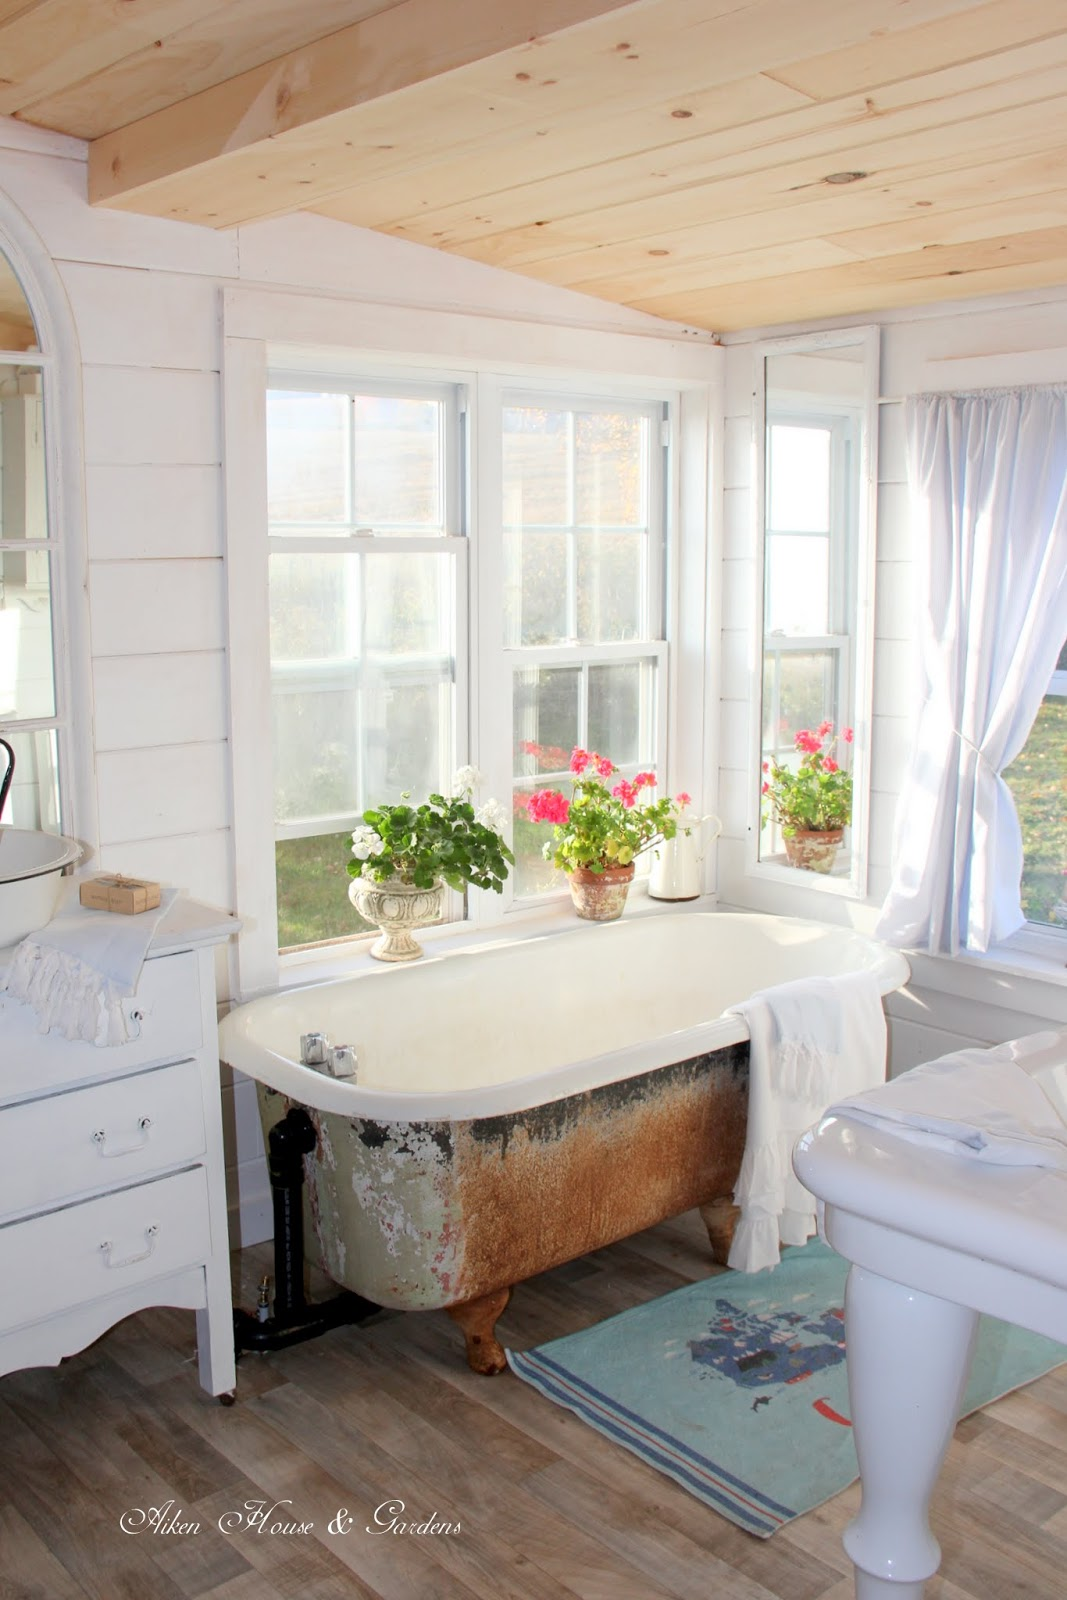 Aiken House & Gardens: Cottage Bathroom Makeover